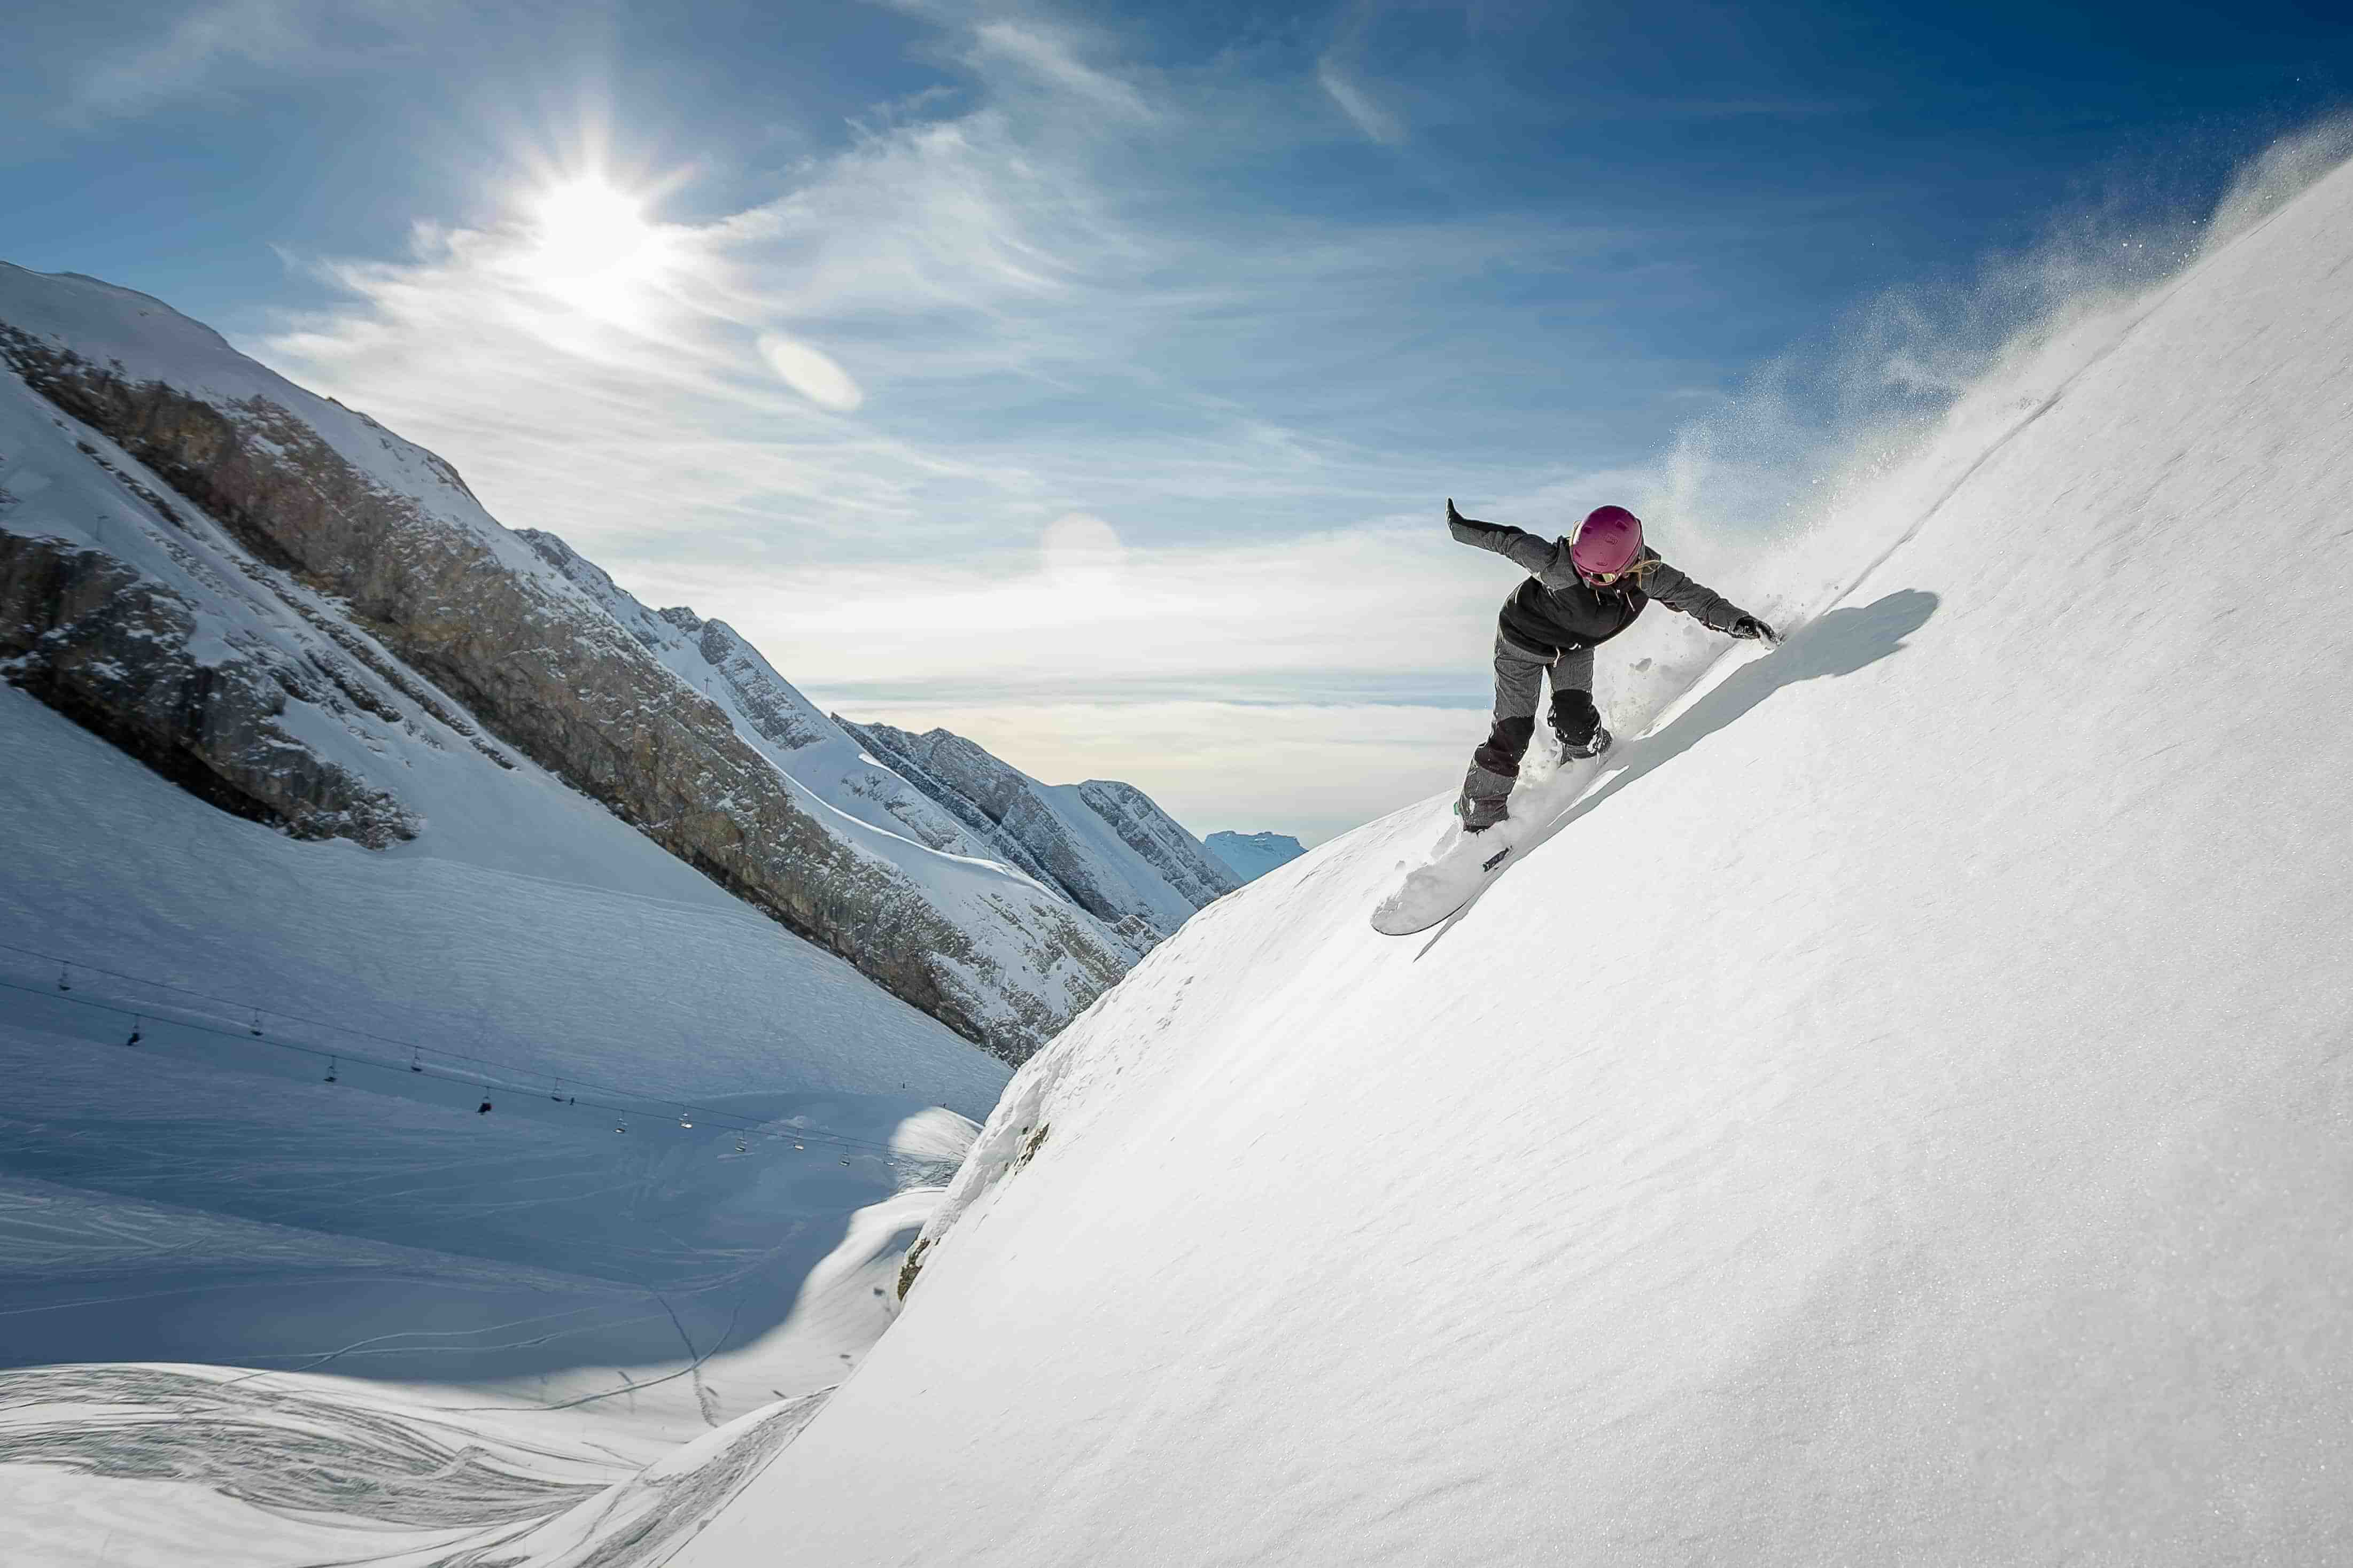 Secrets of Skiing Smarter - History, Gear and Types of Skiing